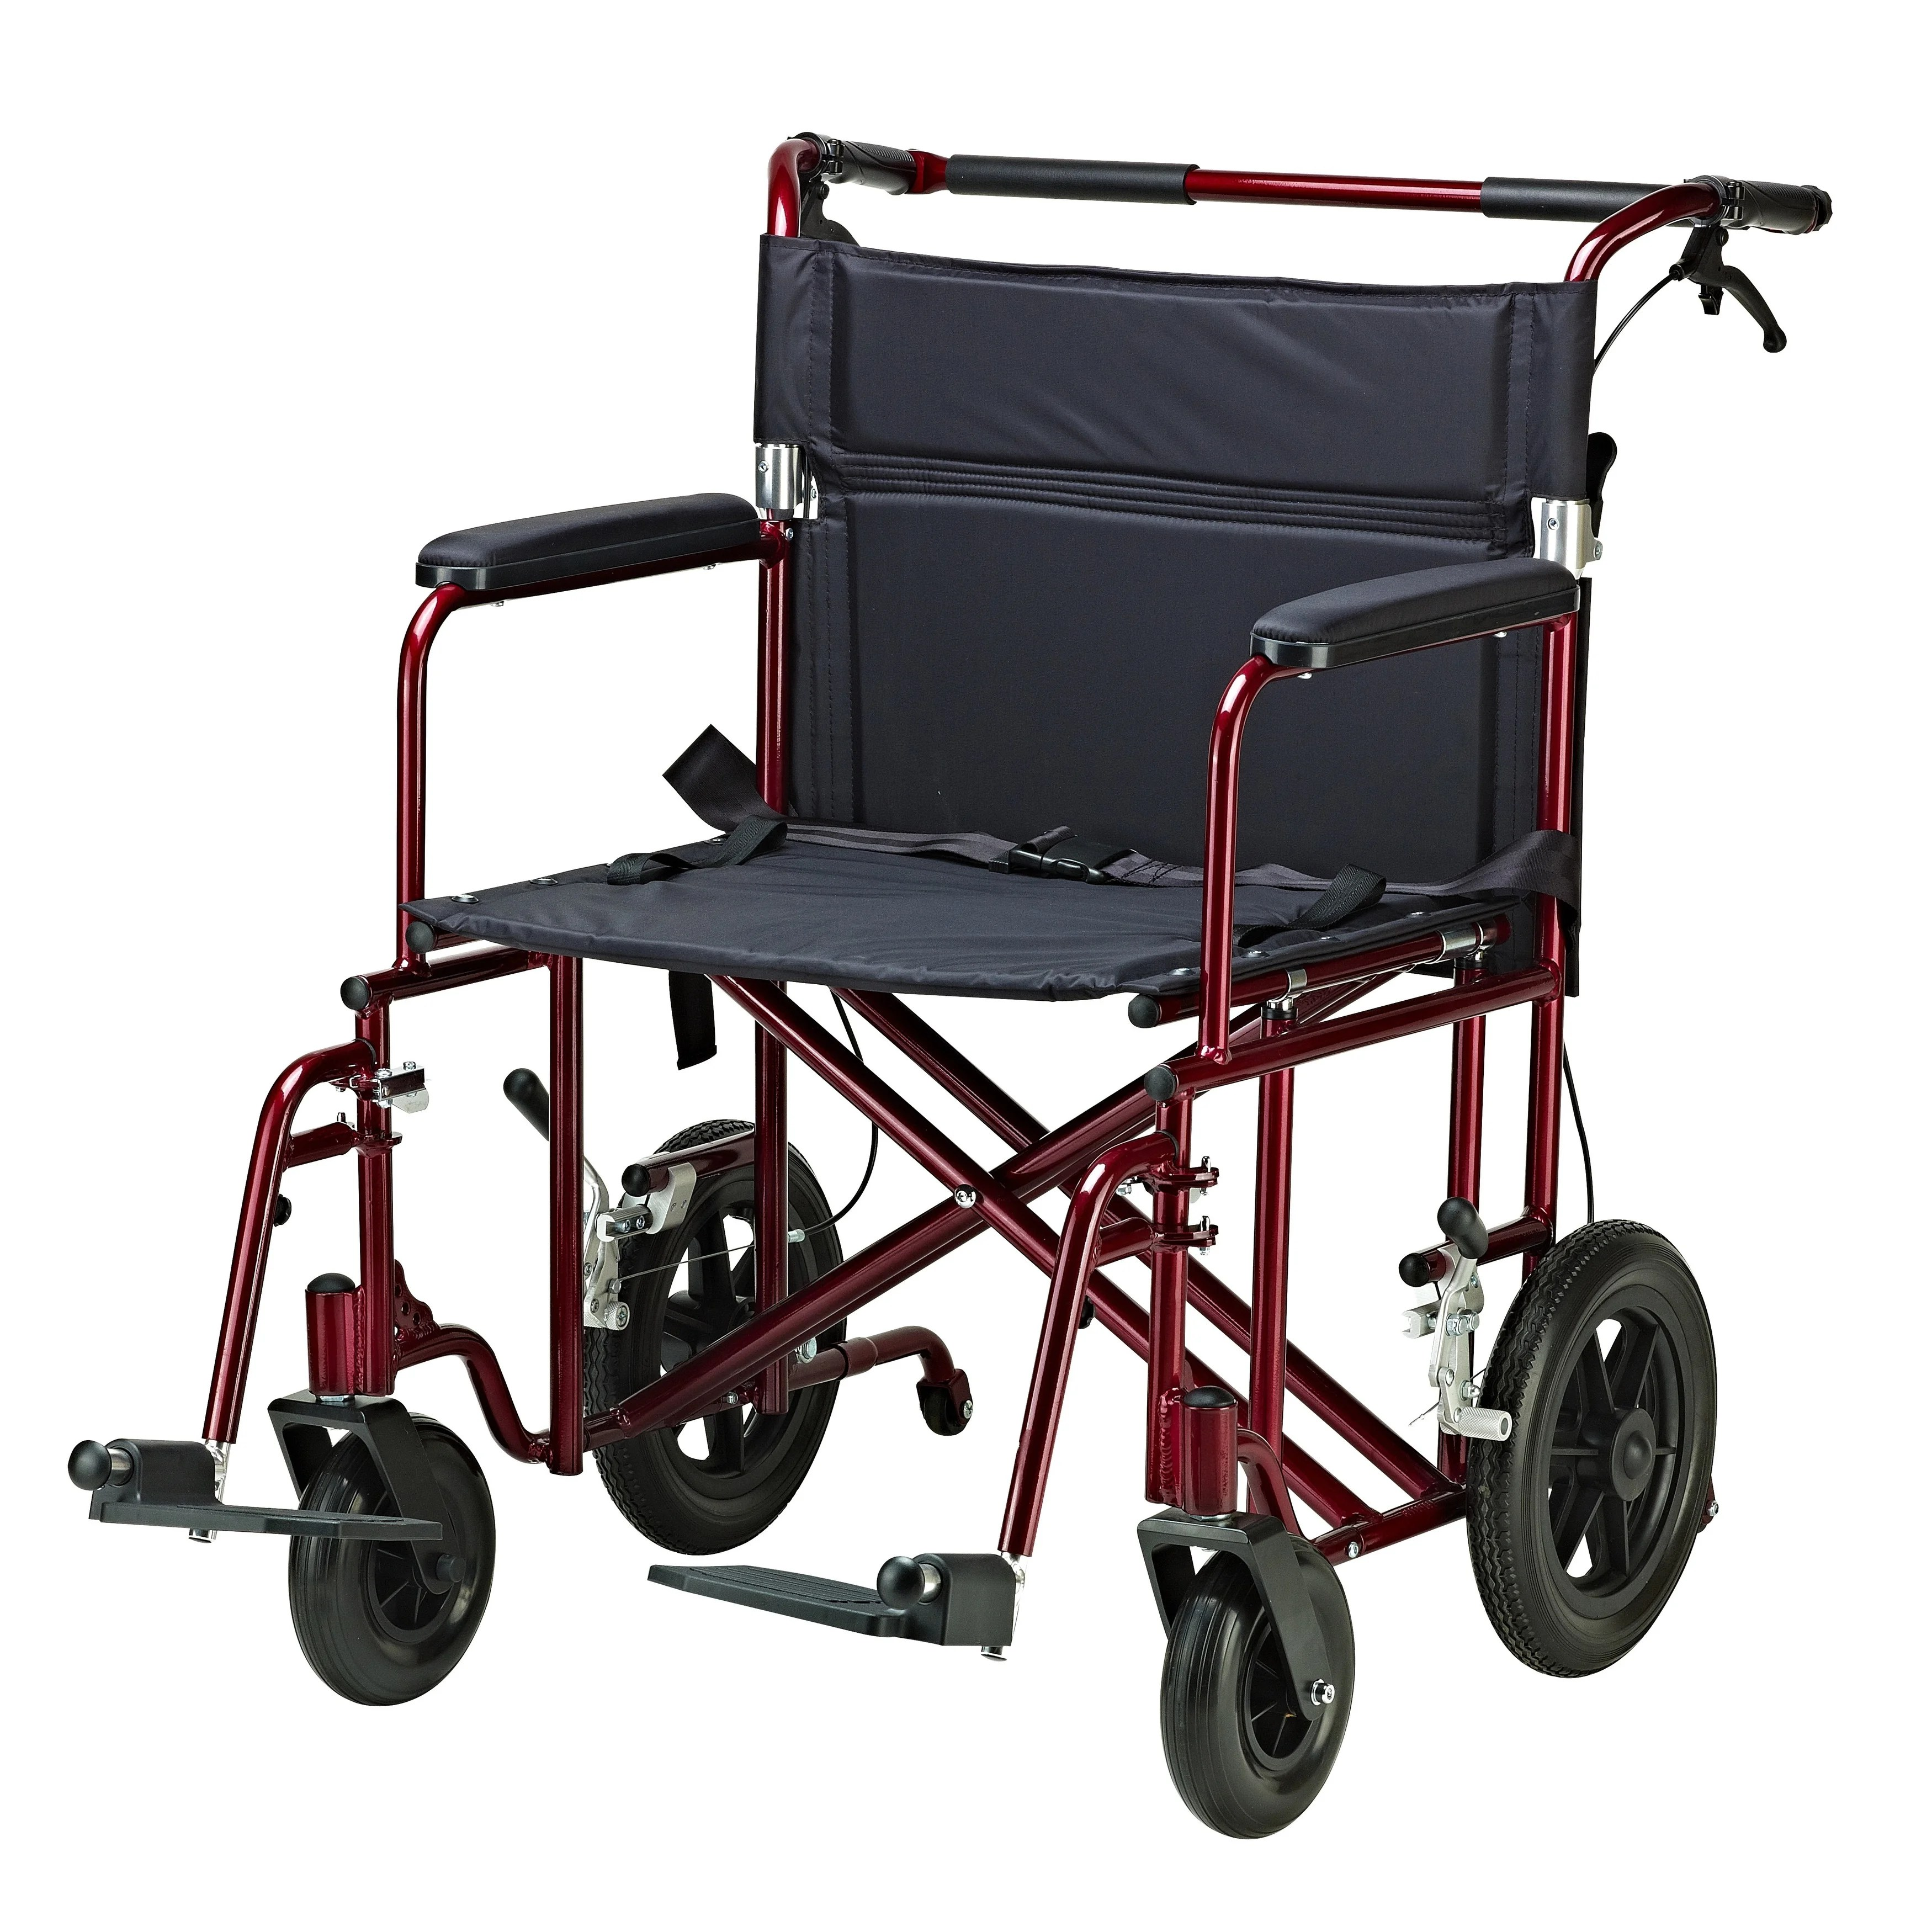 transport wheel chair covers rentals in dallas shop drive medical bariatric heavy duty wheelchair free shipping today overstock com 7278627